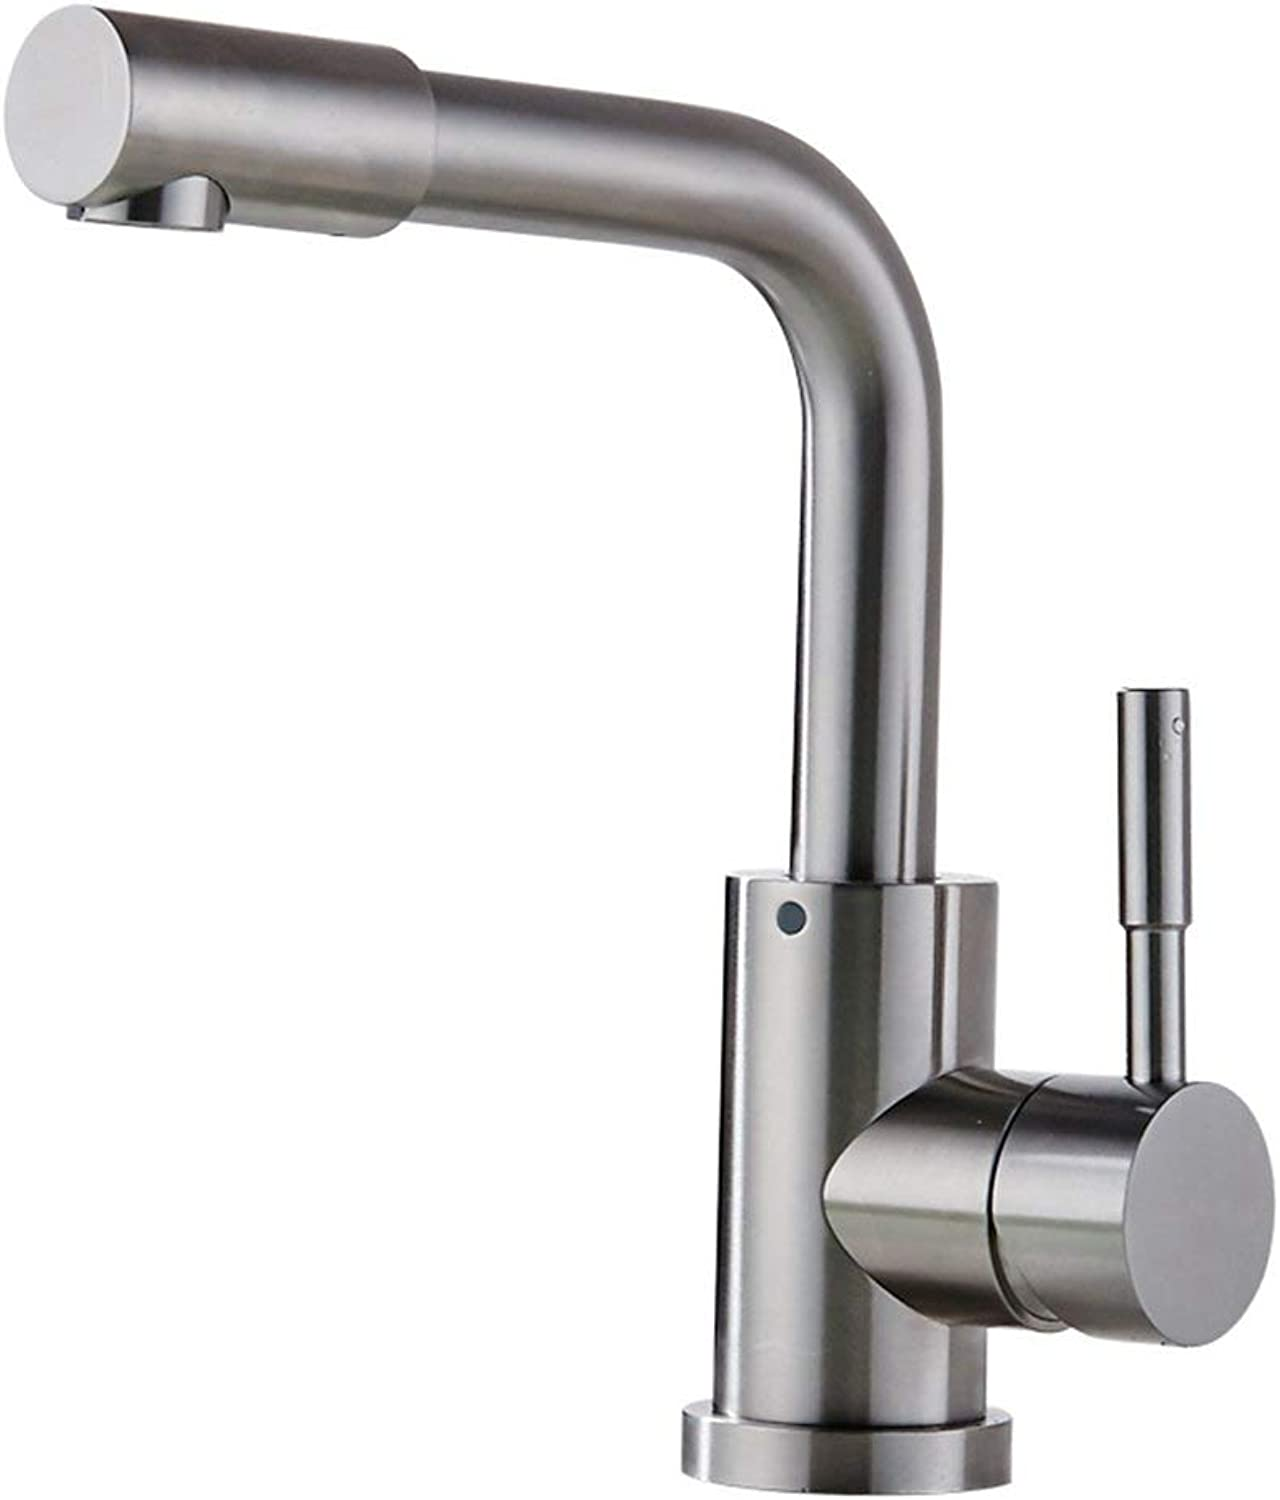 DYR Faucet Tap 304 Stainless Steel Single Hole Hot and Cold Turn the Tap (color  A)